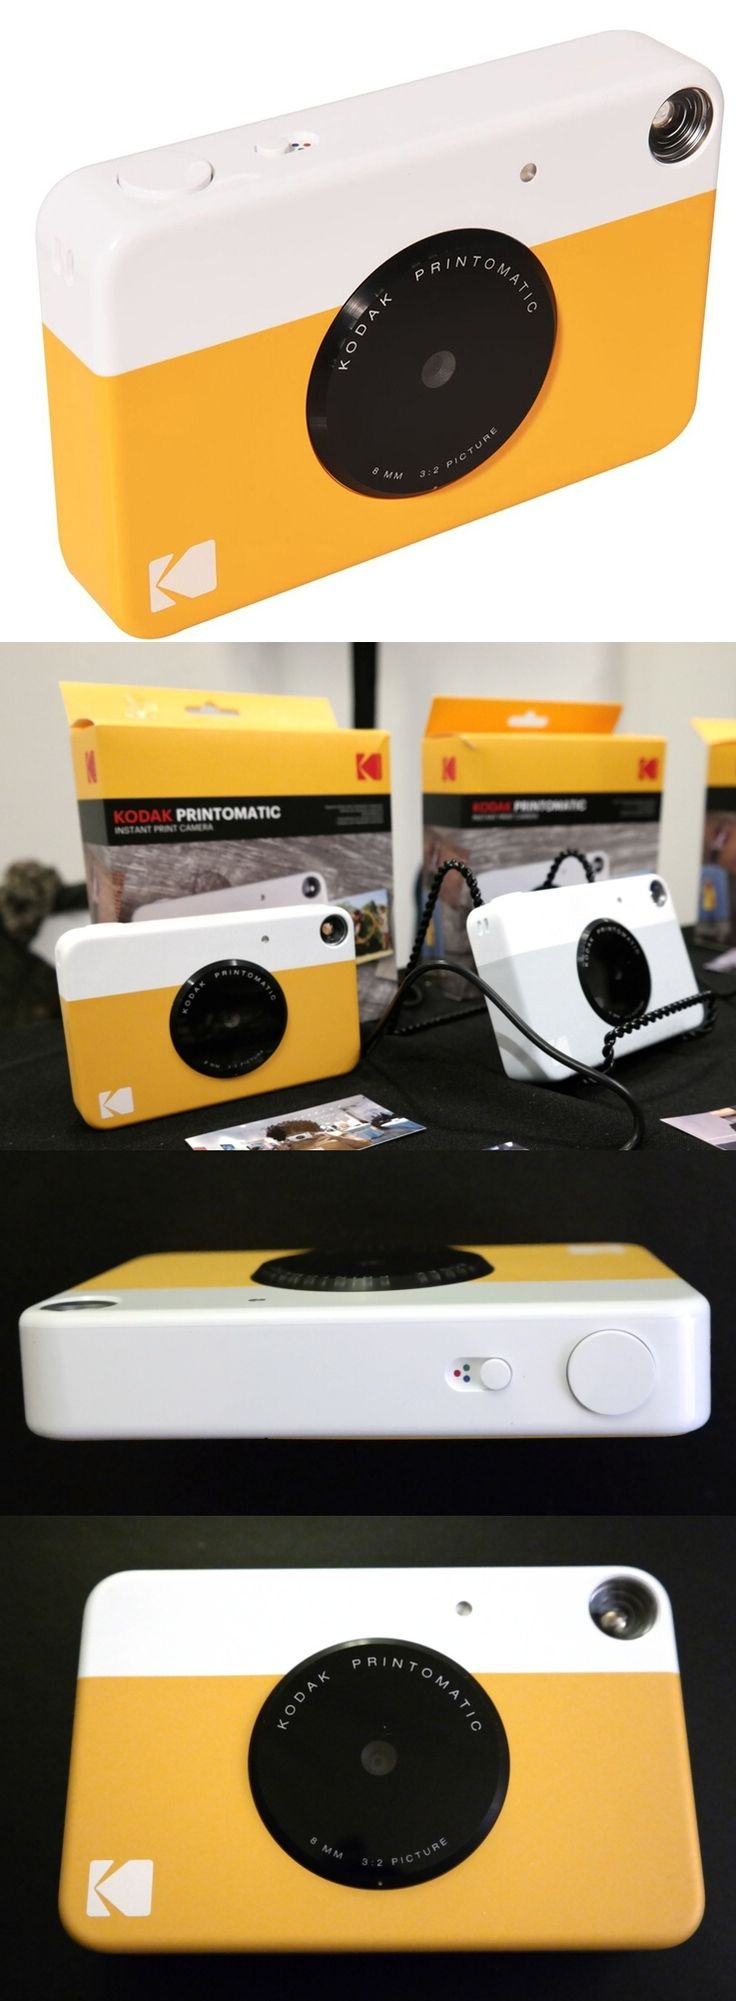 Kodak is back in the instant photo business with the $70 Printomatic Instant Print Camera. The 10-megapixel unit, made under license by C+A Global, yields 2-by-3-inch prints and has a microSD slot for removable memory cards. The Printomatic uses ink-free Zink thermal paper instead of film packs and is simple to use: Frame the subject in the viewfinder and push the shutter button. Kodak left the instant camera business in 1986 after Polaroid won a patent infringement suit. #Pepcom…